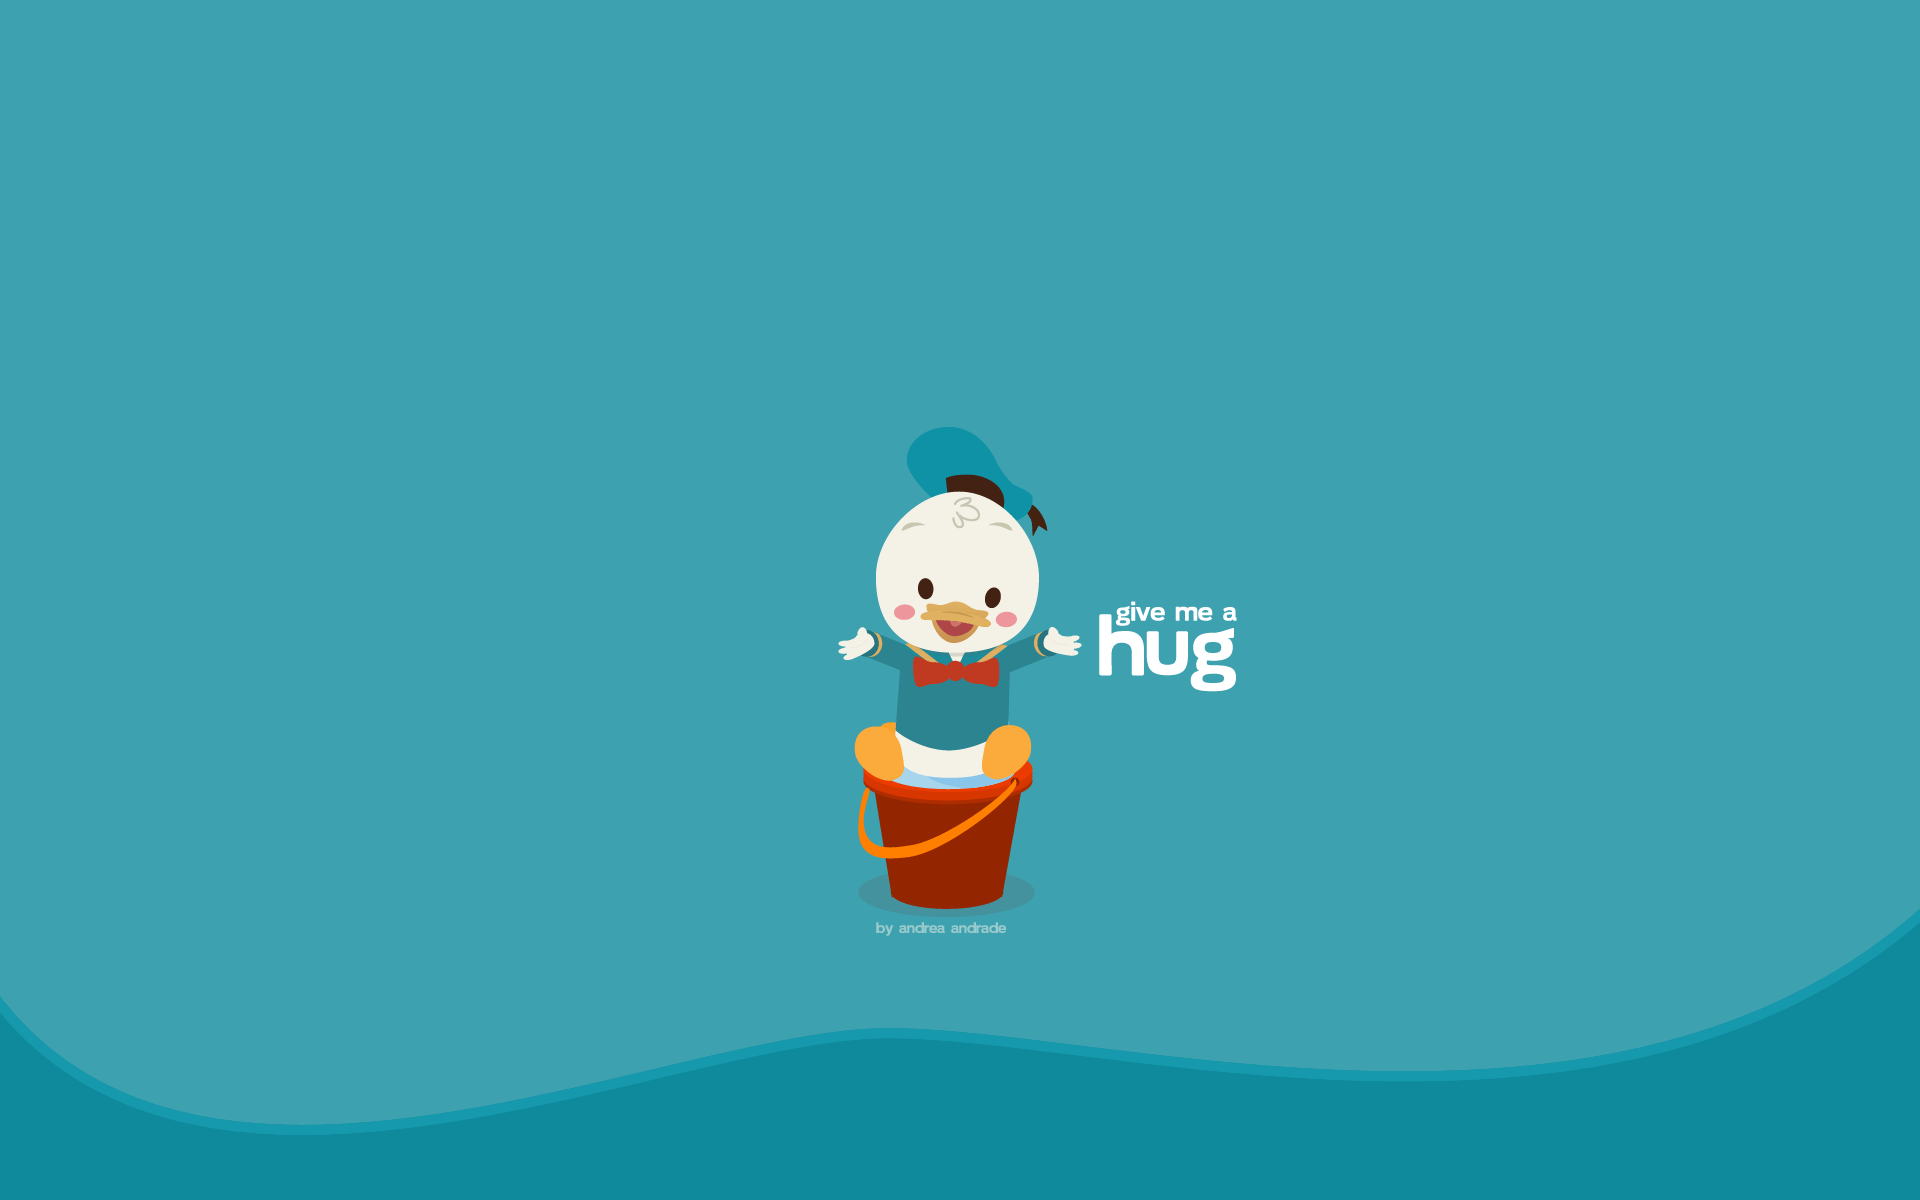 Cute Wallpapers On Computer Donald Duck Wallpapers For Desktop Pixelstalk Net